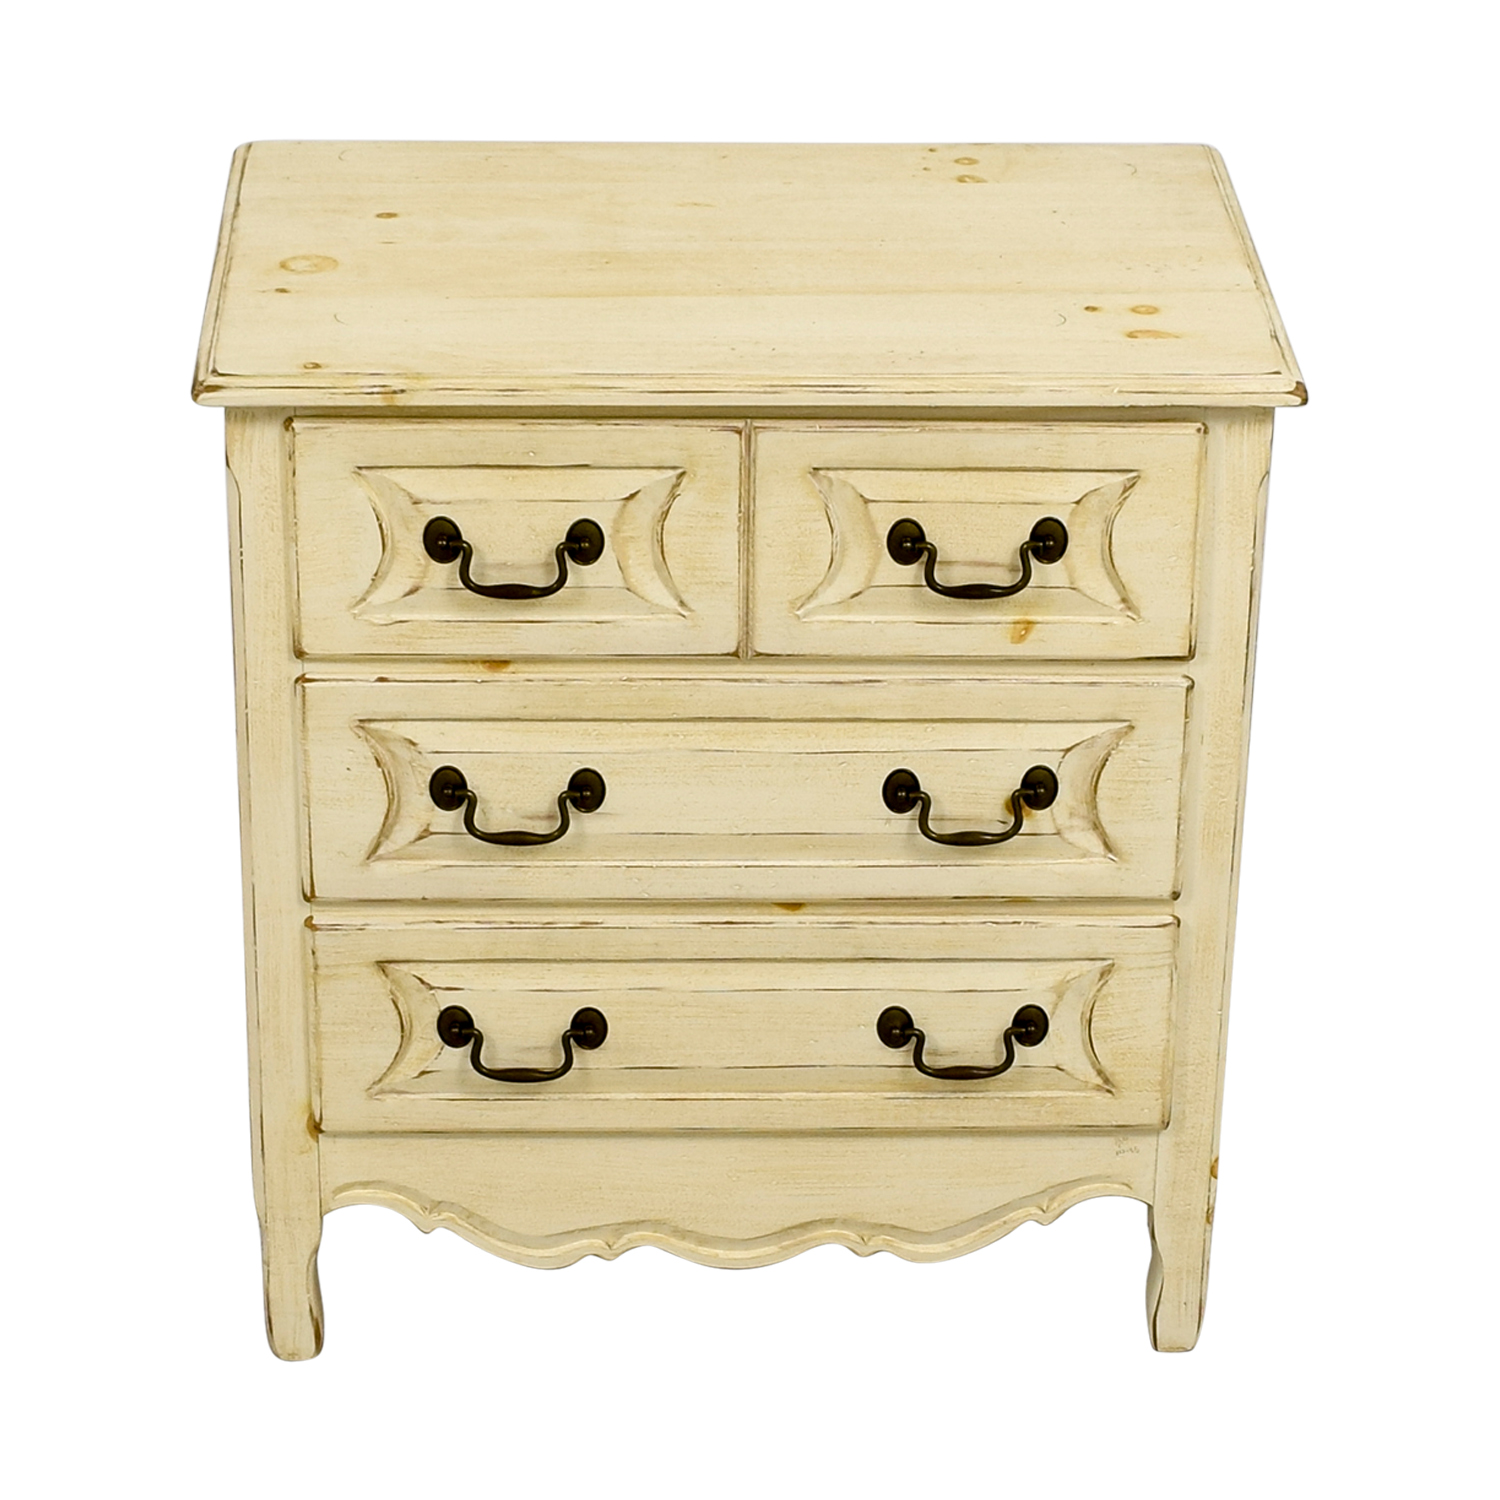 Habersham Plantation Rustic Three-Drawer Dresser / Storage